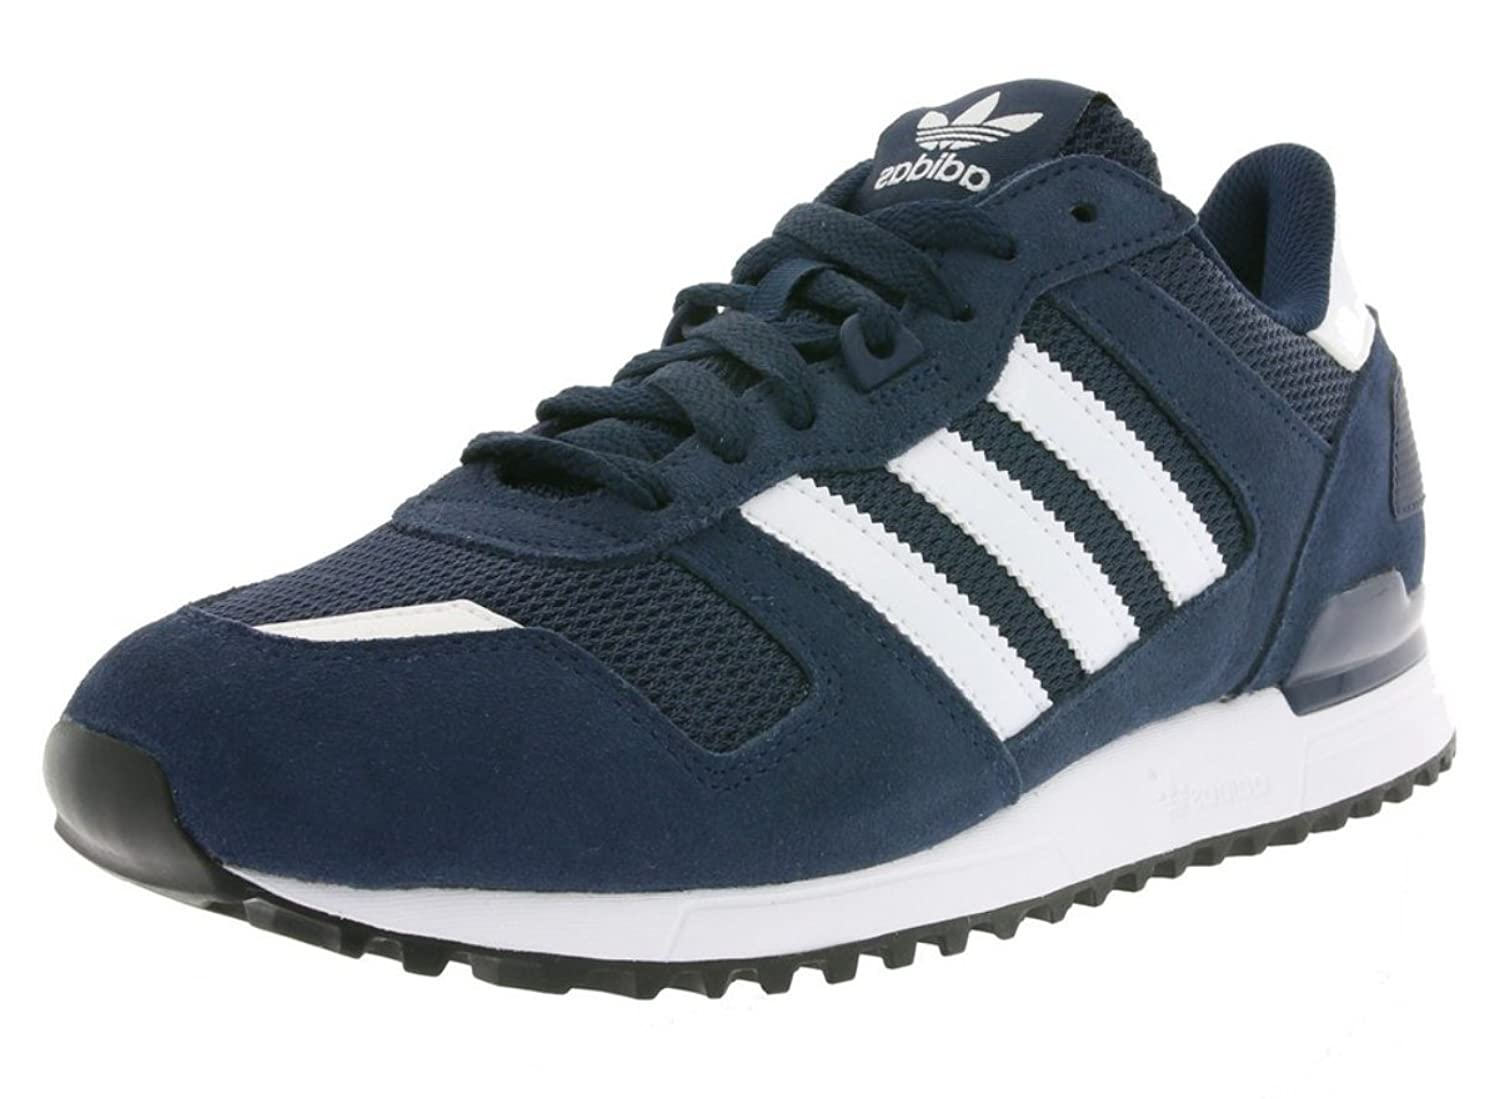 6ef1a55f3fb6 ... promo code for 70off adidas zx700 zx 700 originals mens running shoe  navy white s76176 d411b